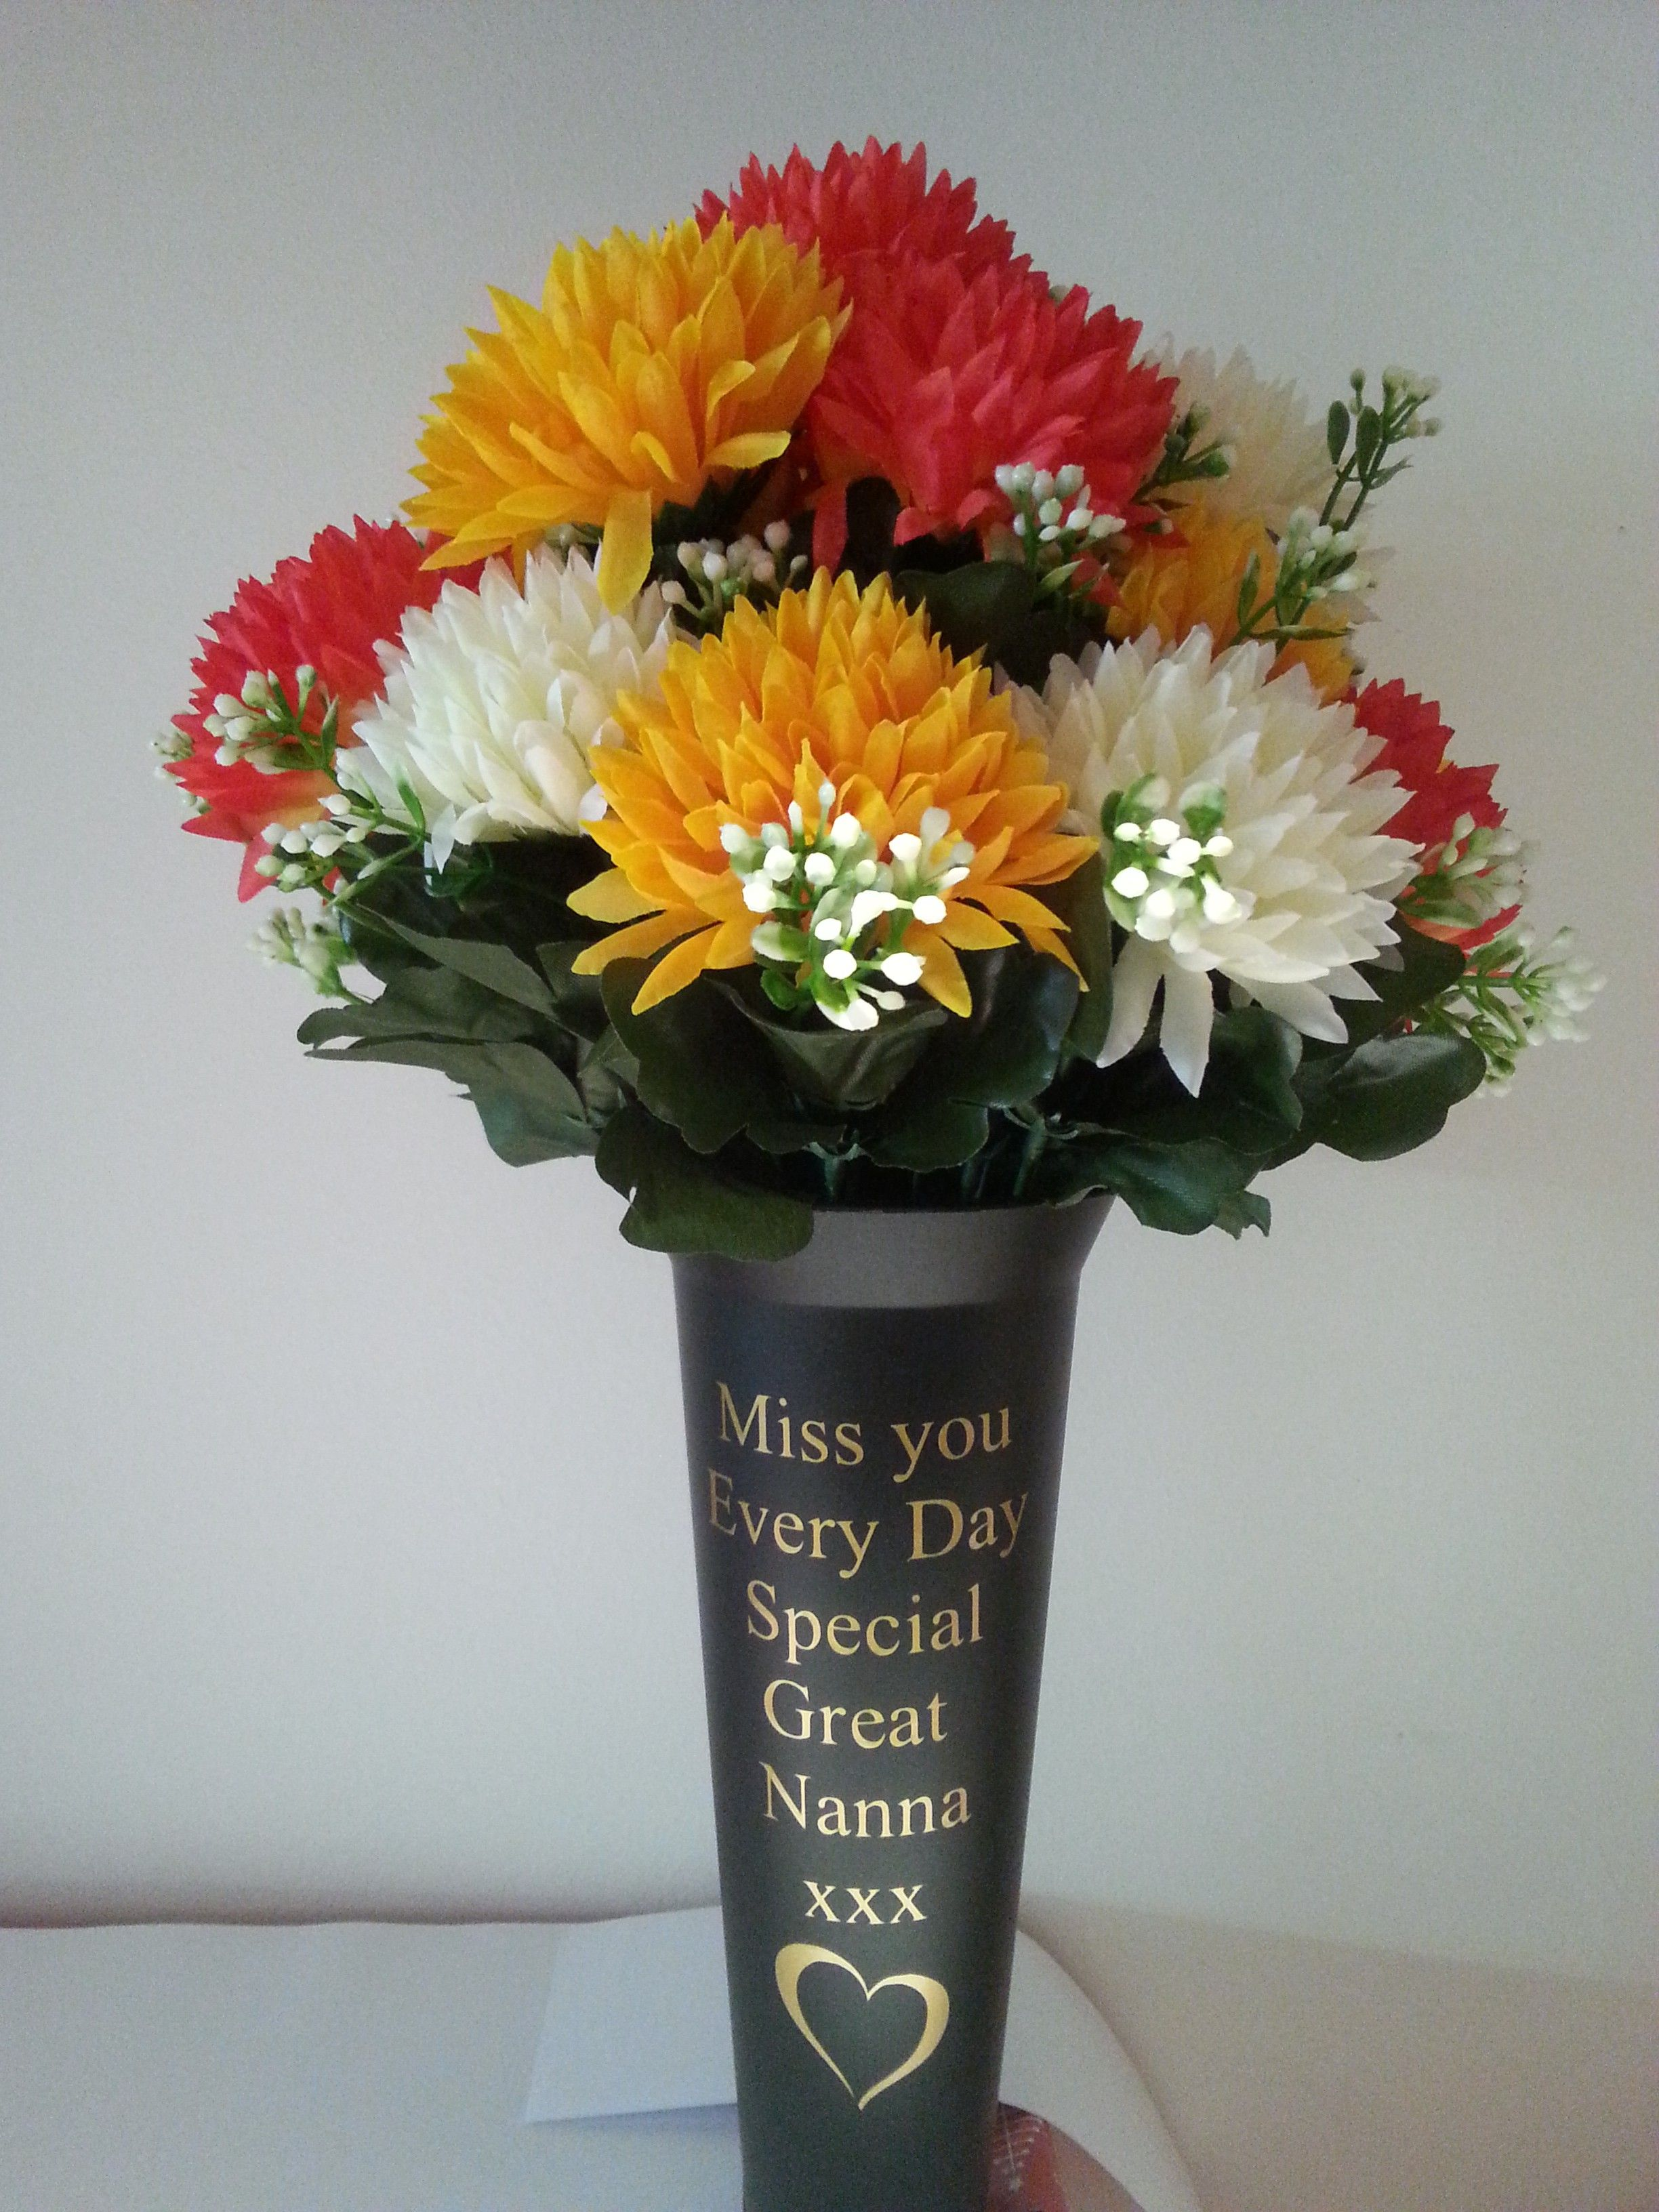 Personalised Grave Vase Spike Heart Design With Flowers Memorial Engraved Stone Pinterest